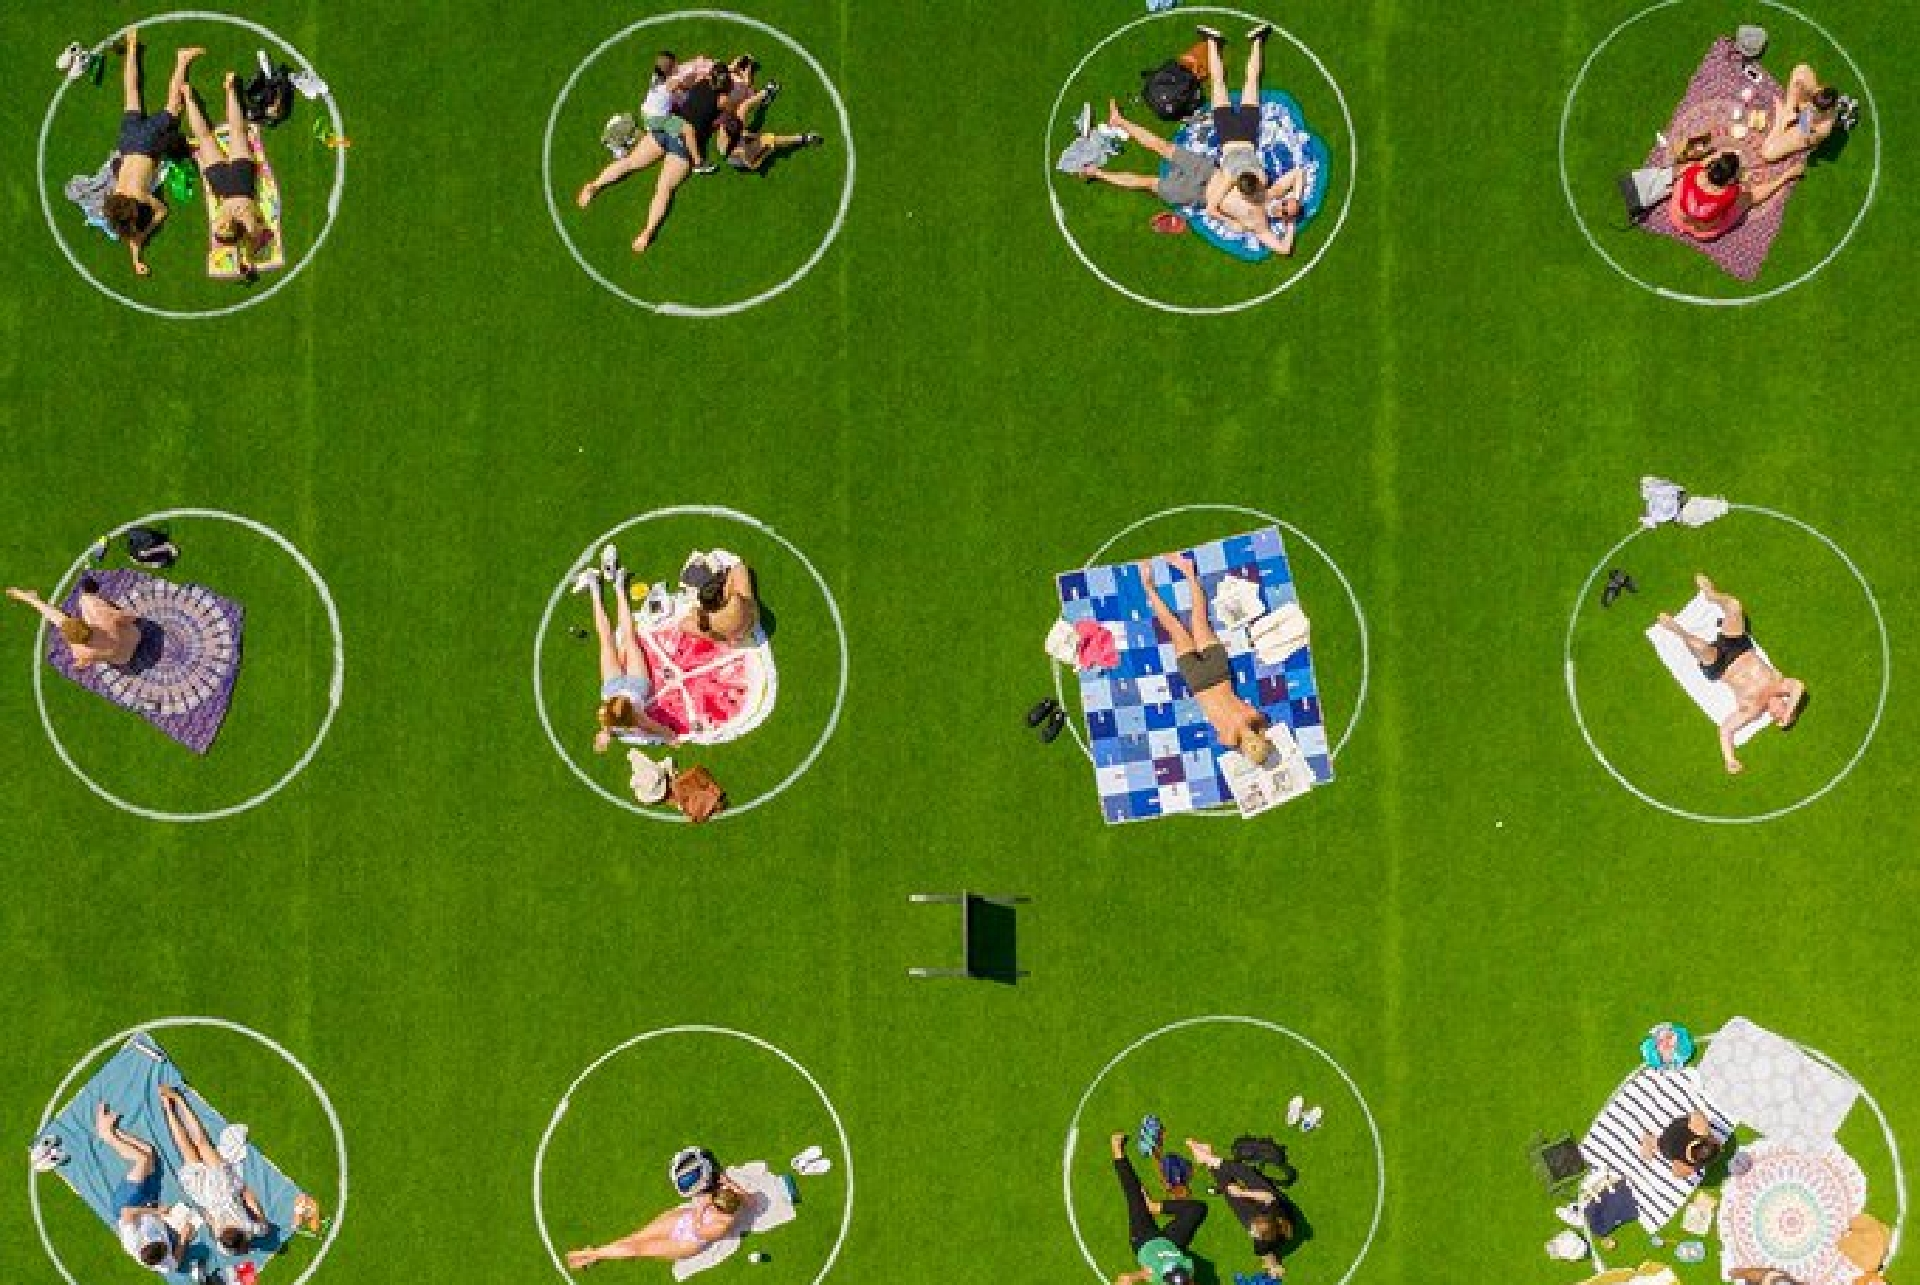 Picnic patches at America's Oldest Polo Club: Newport Polo